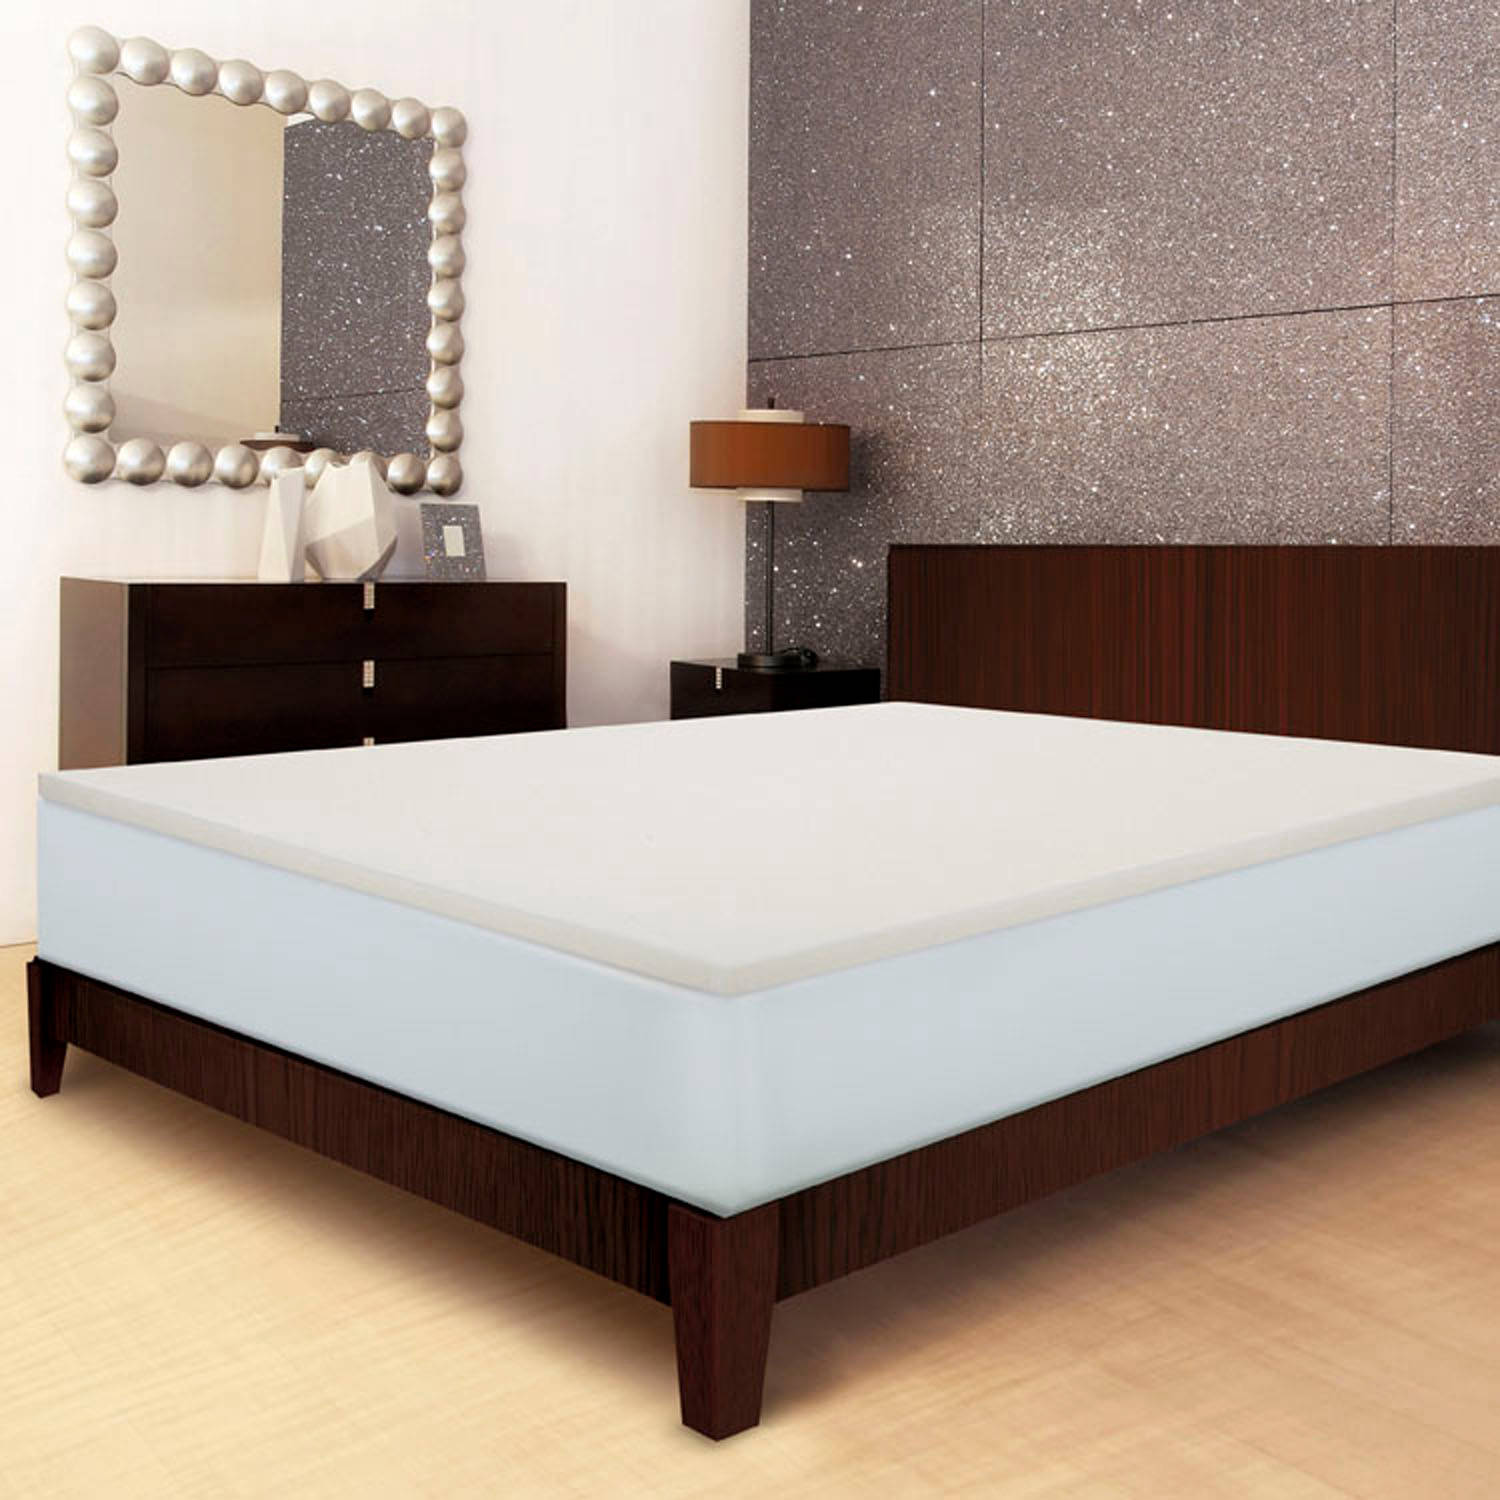 free bedding today overstock toppers topper memory touch of shipping deluxe mattress foam bath inch comfort serta product